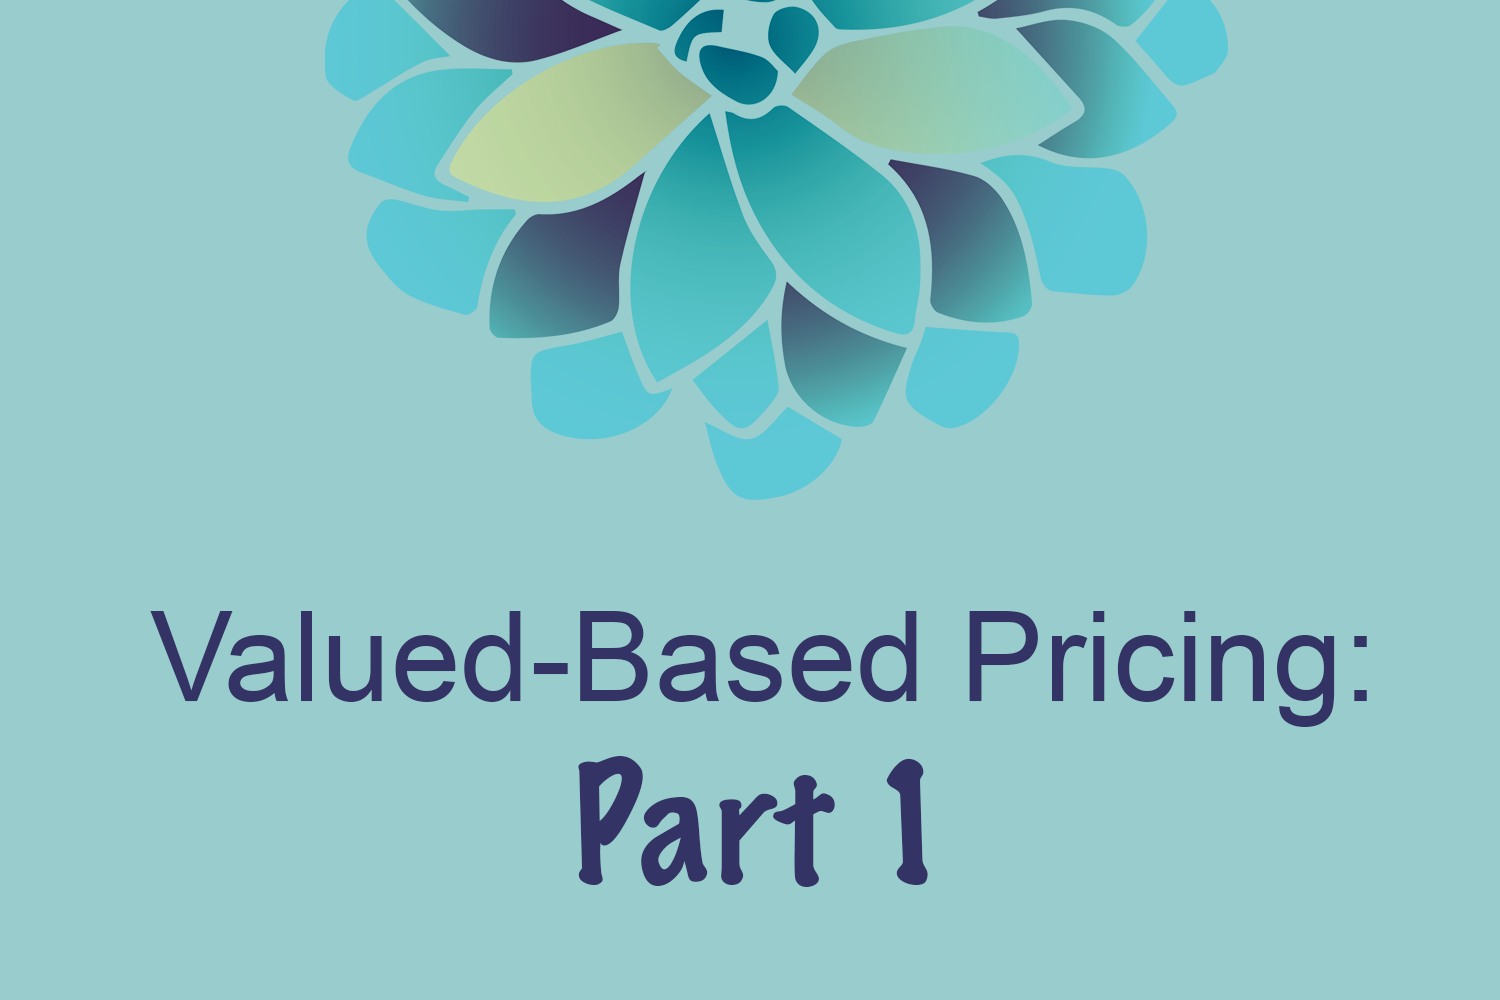 Value-Based Pricing, Part 1: Why You Should Ditch Your Hourly Rate